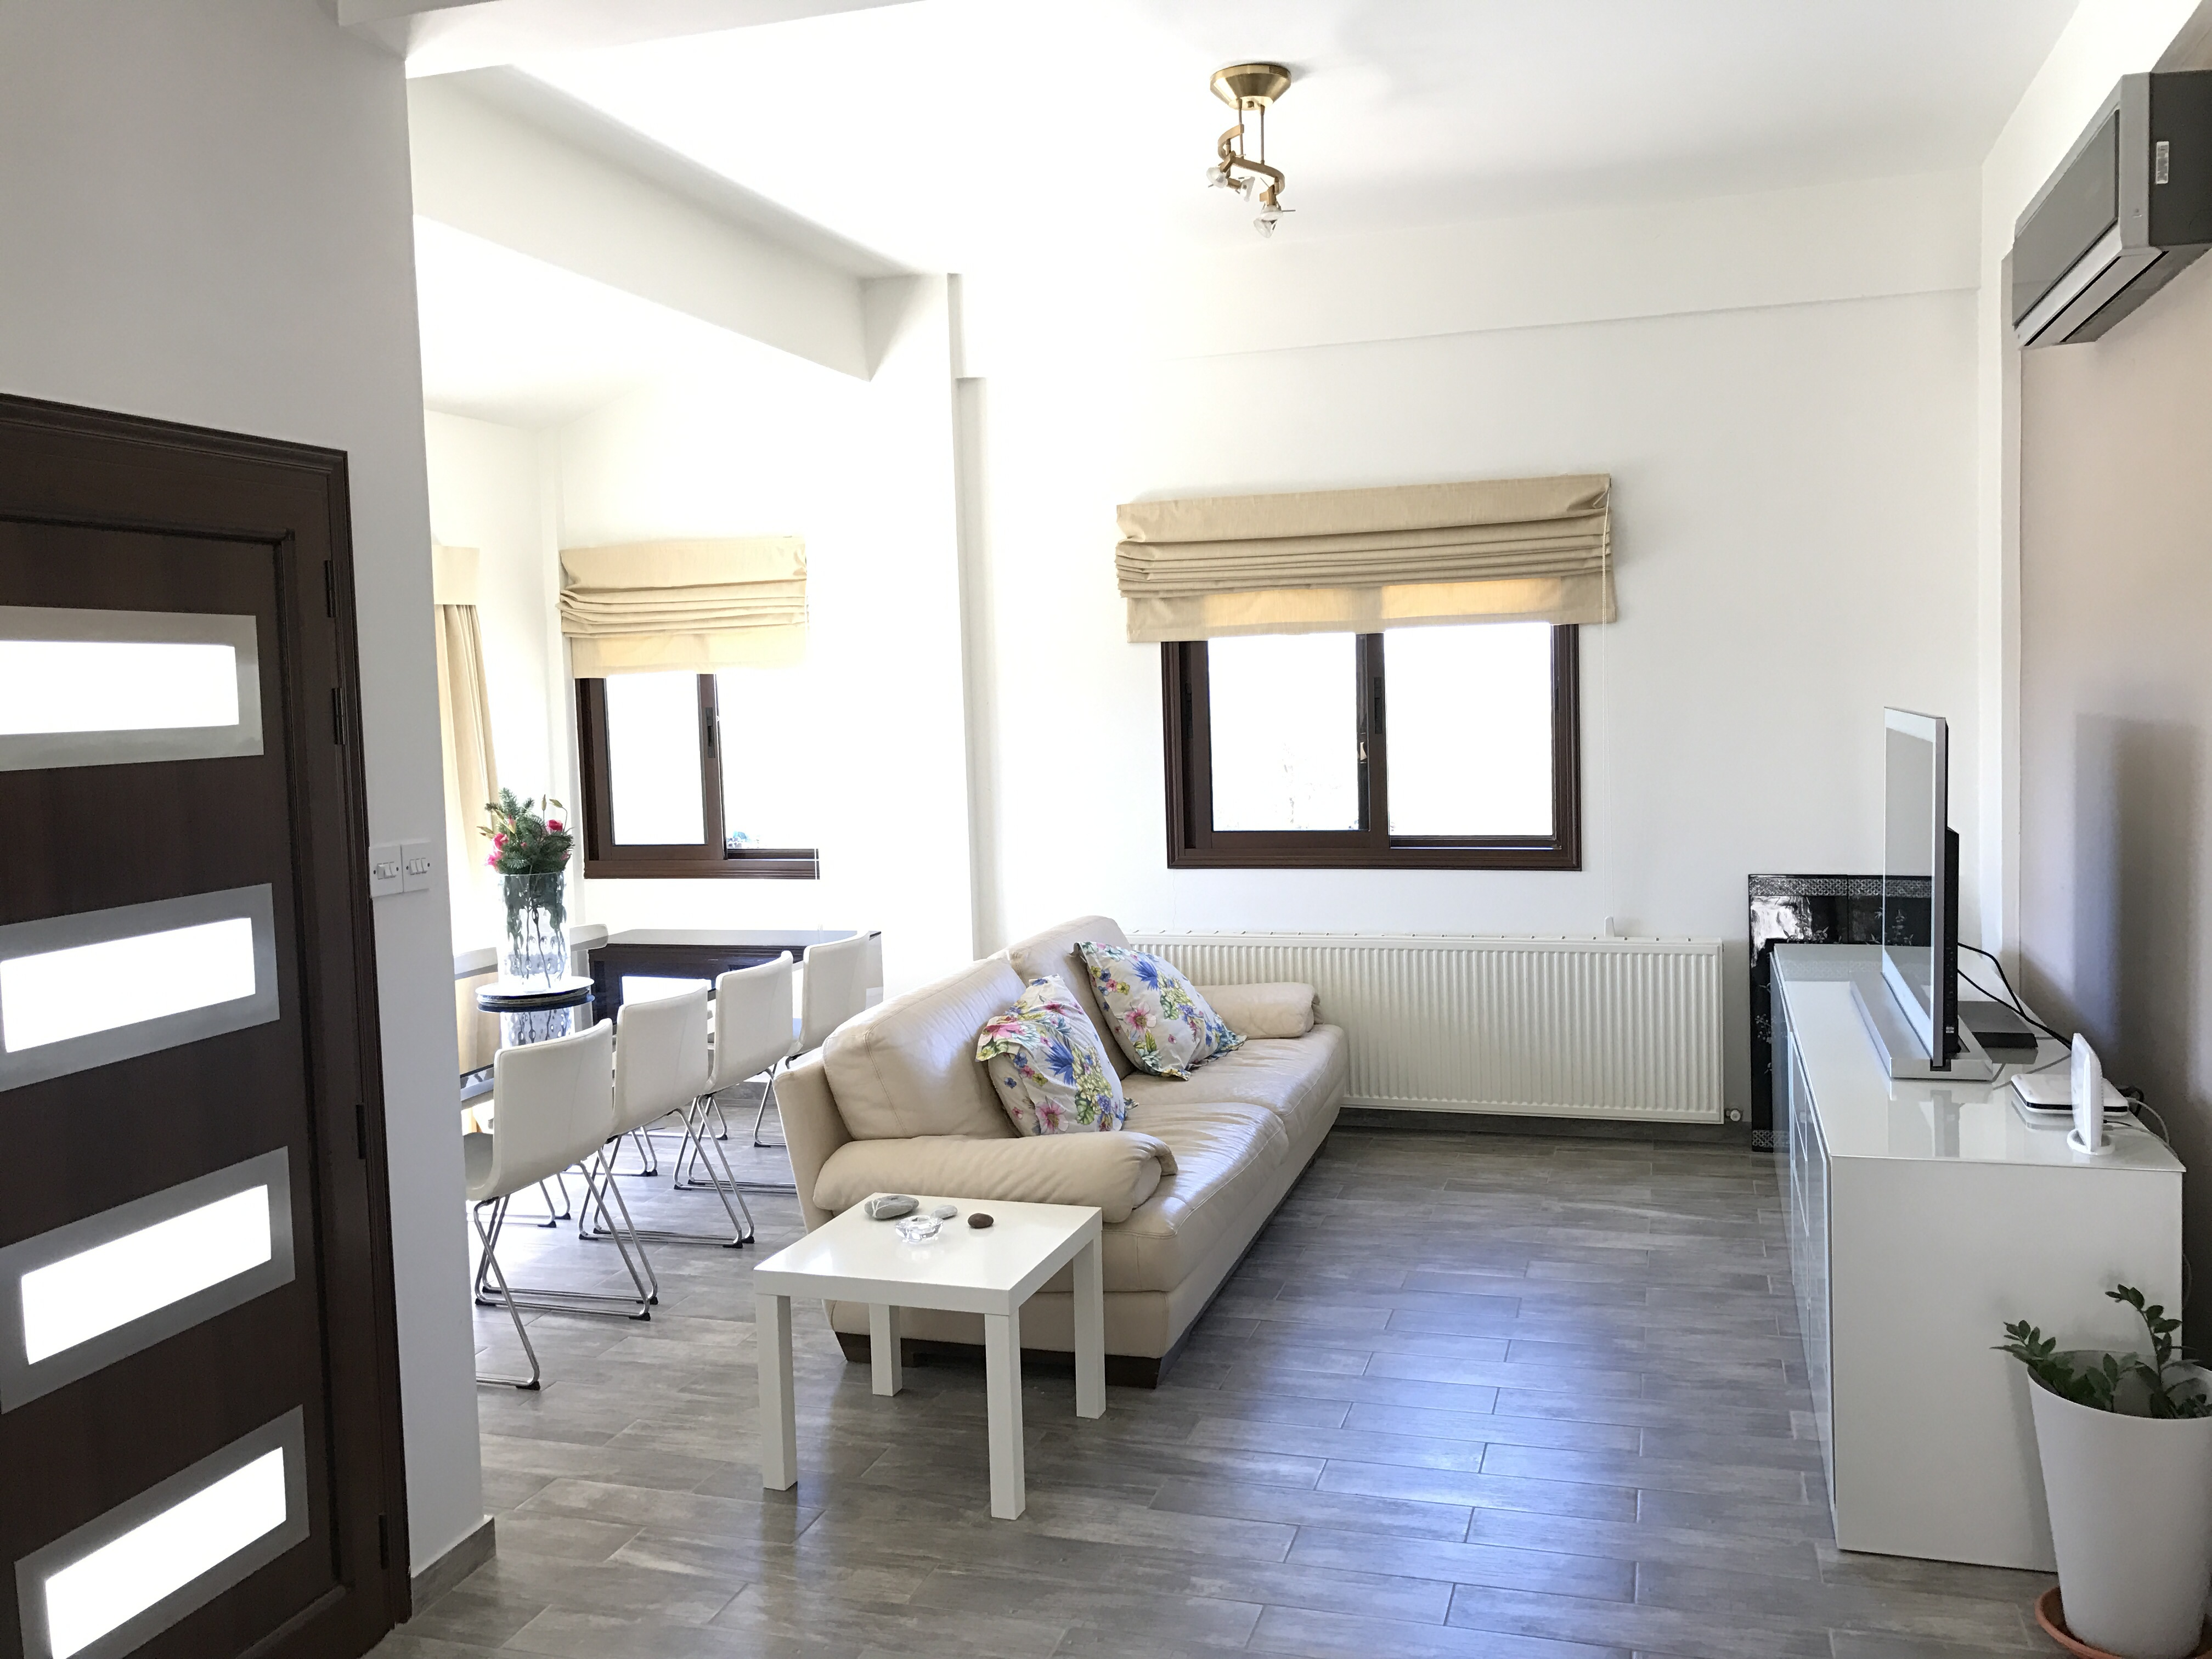 Tuscan style 3 bedroom villa for sale, Limassol, Cyprus | Moulin